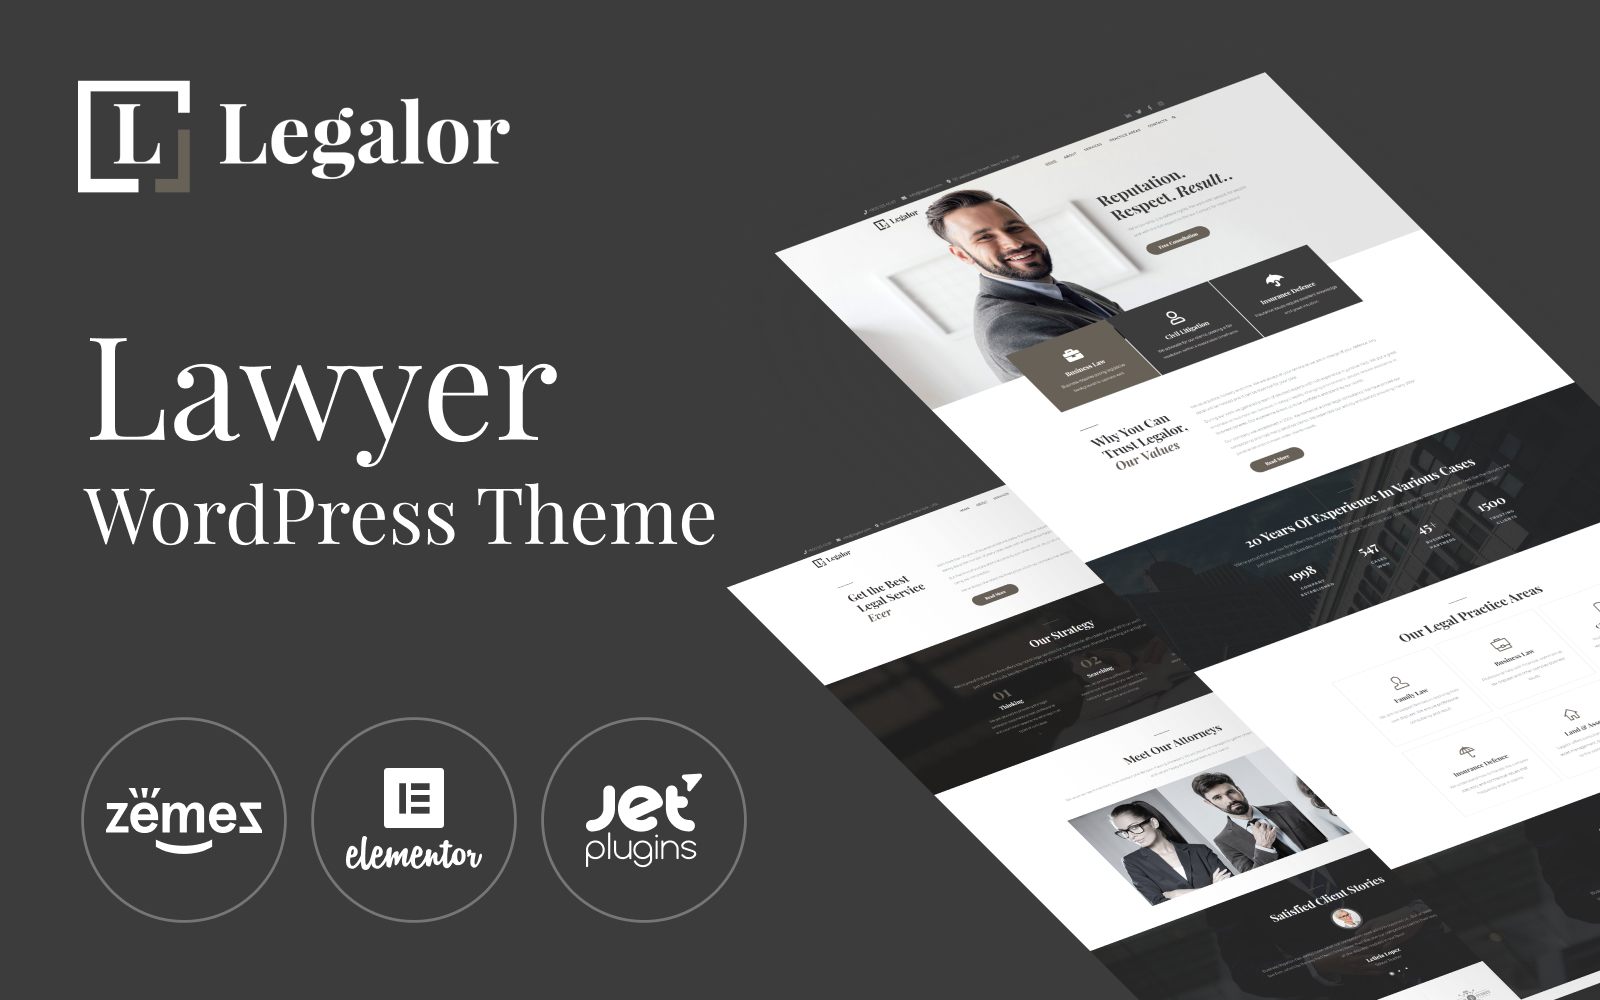 Legalor - Lawyer Elementor WordPress Theme - screenshot